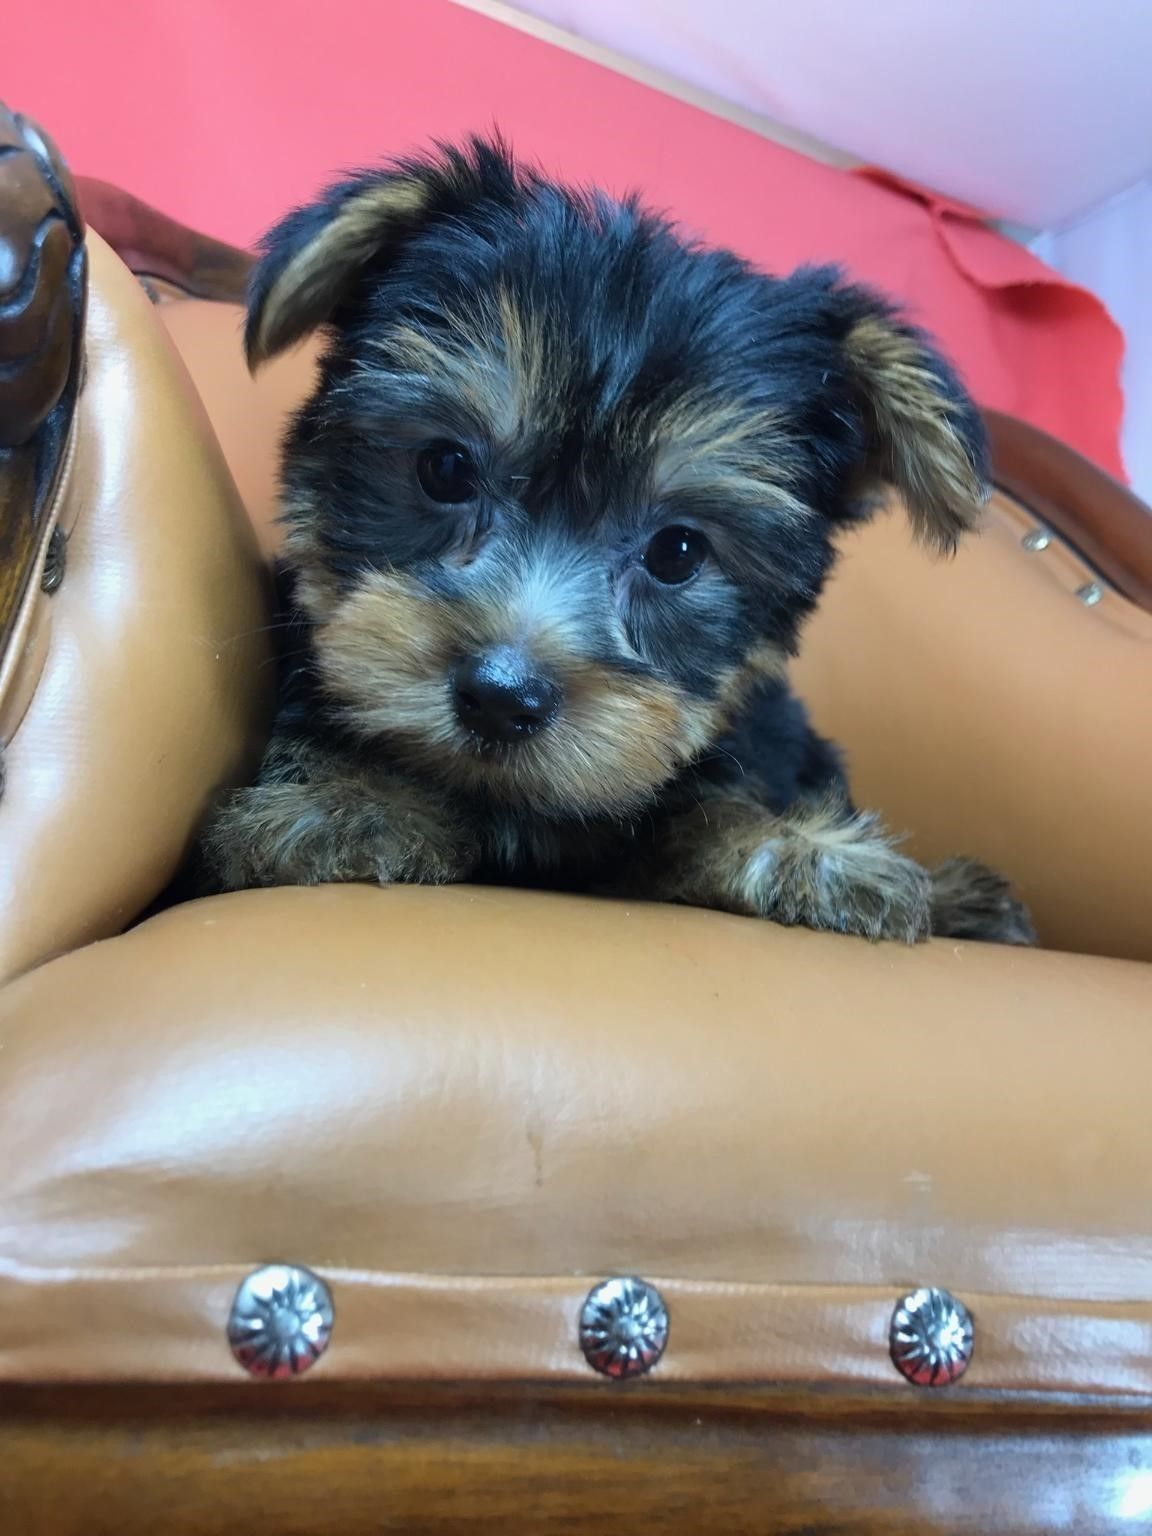 Pin By Lsn On Puppies Cute Puppies Puppies Animals